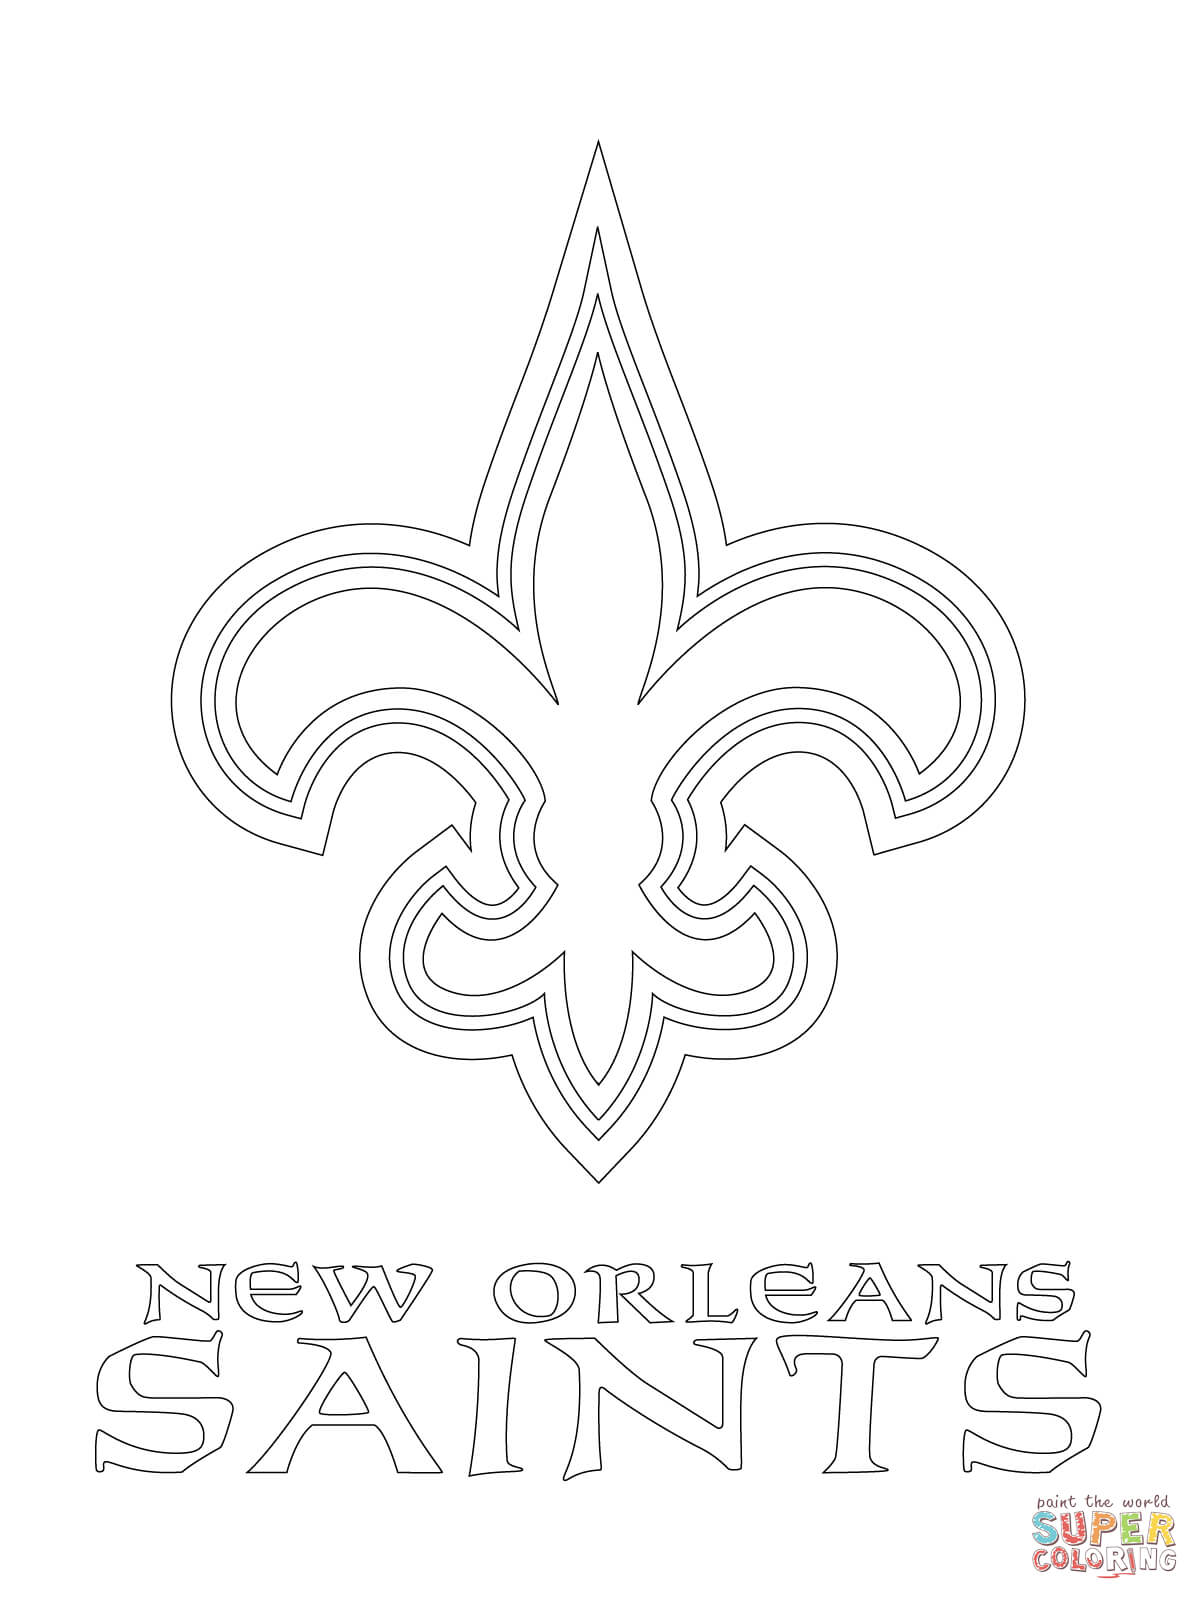 New Orleans Saints Logo Coloring Page